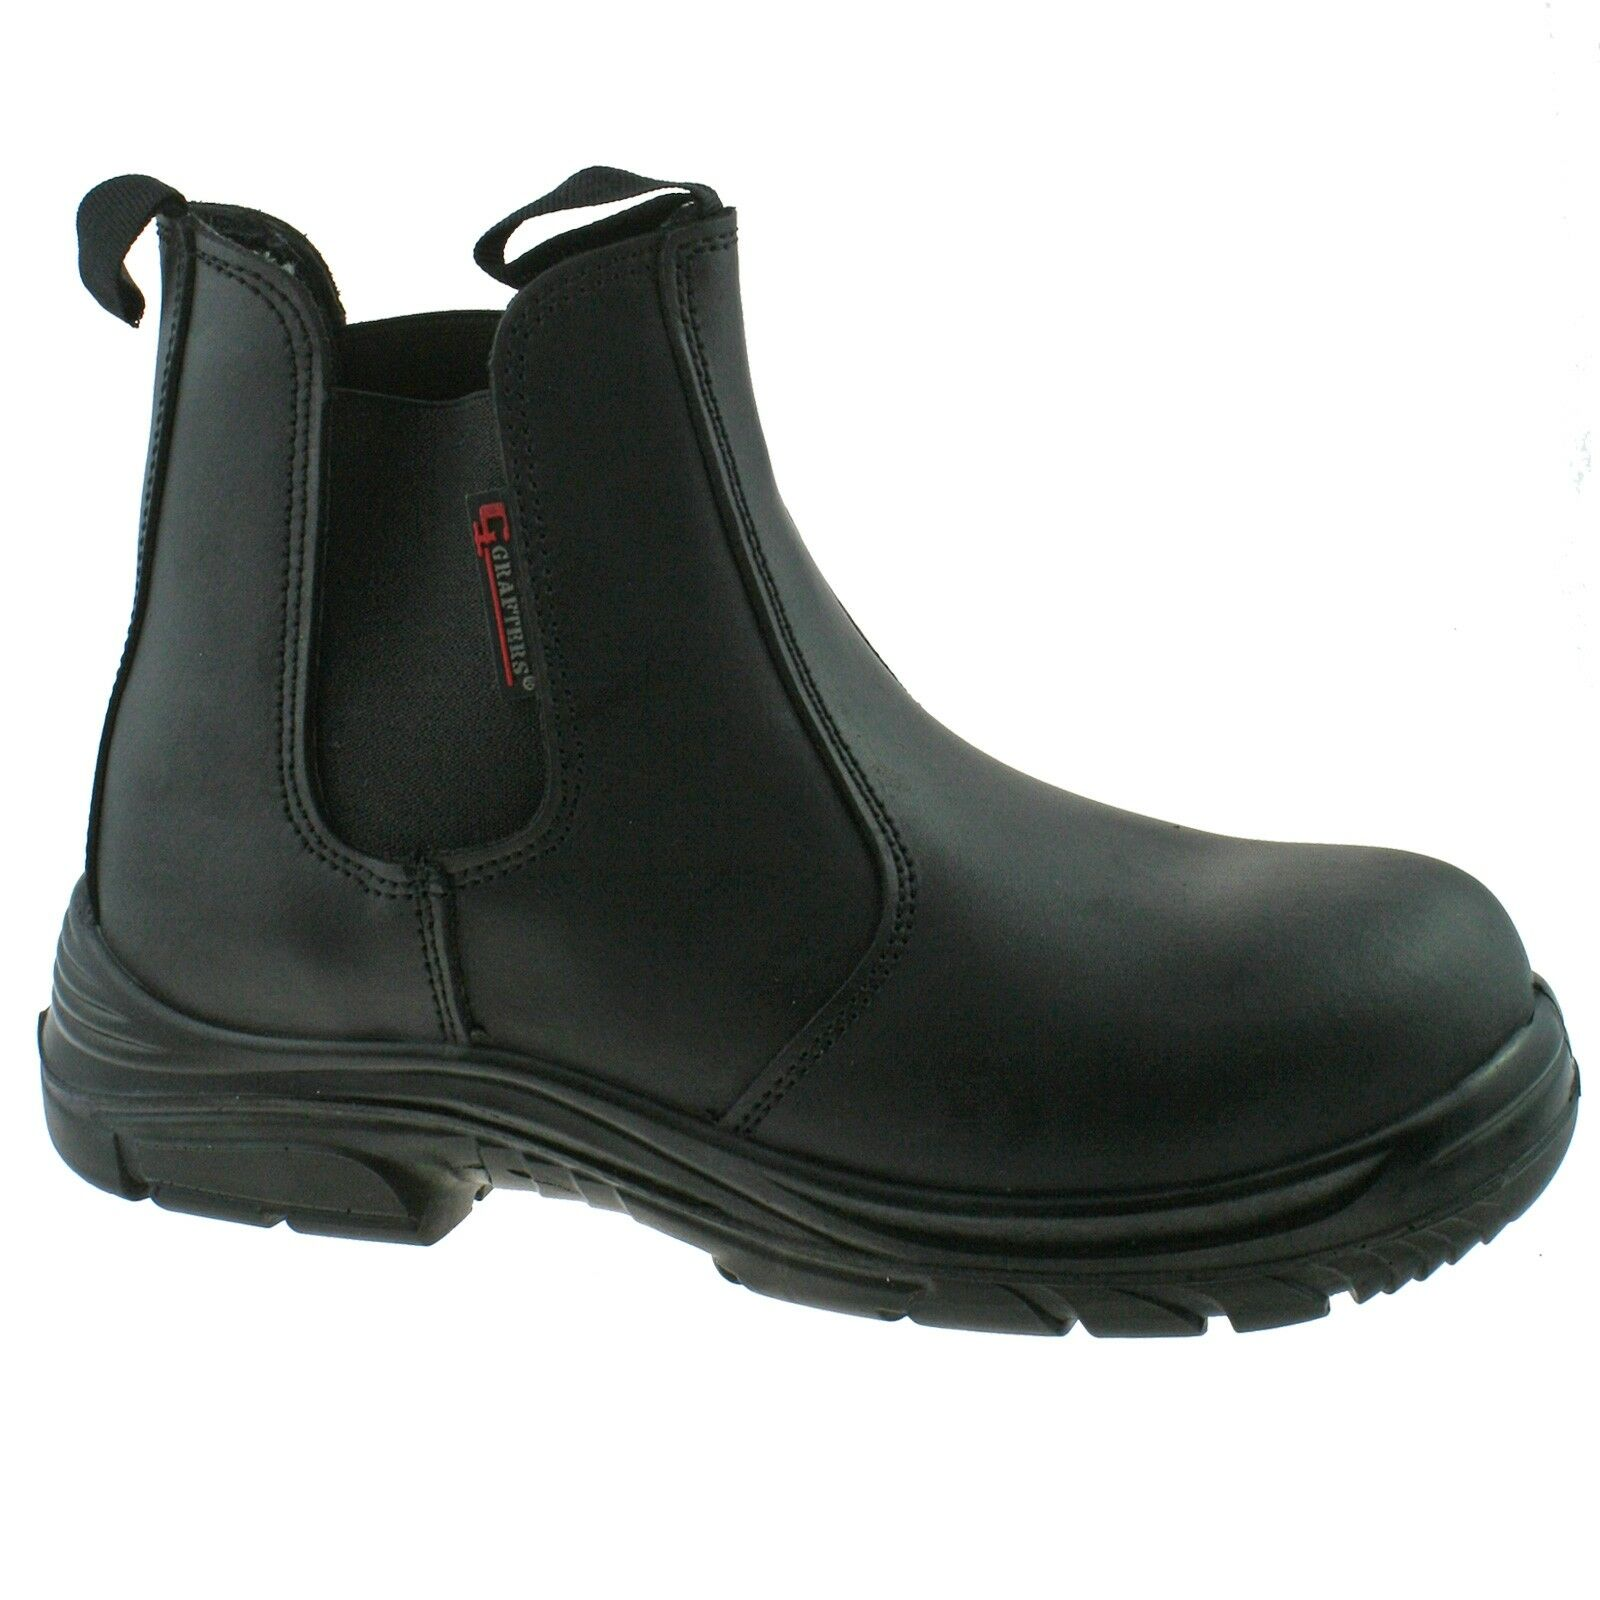 MENS FITTING GRAFTERS BLACK LEATHER WIDE FITTING MENS SAFETY DEALER BOOTS SIZE 6–13 M9502A KD bcf2a4